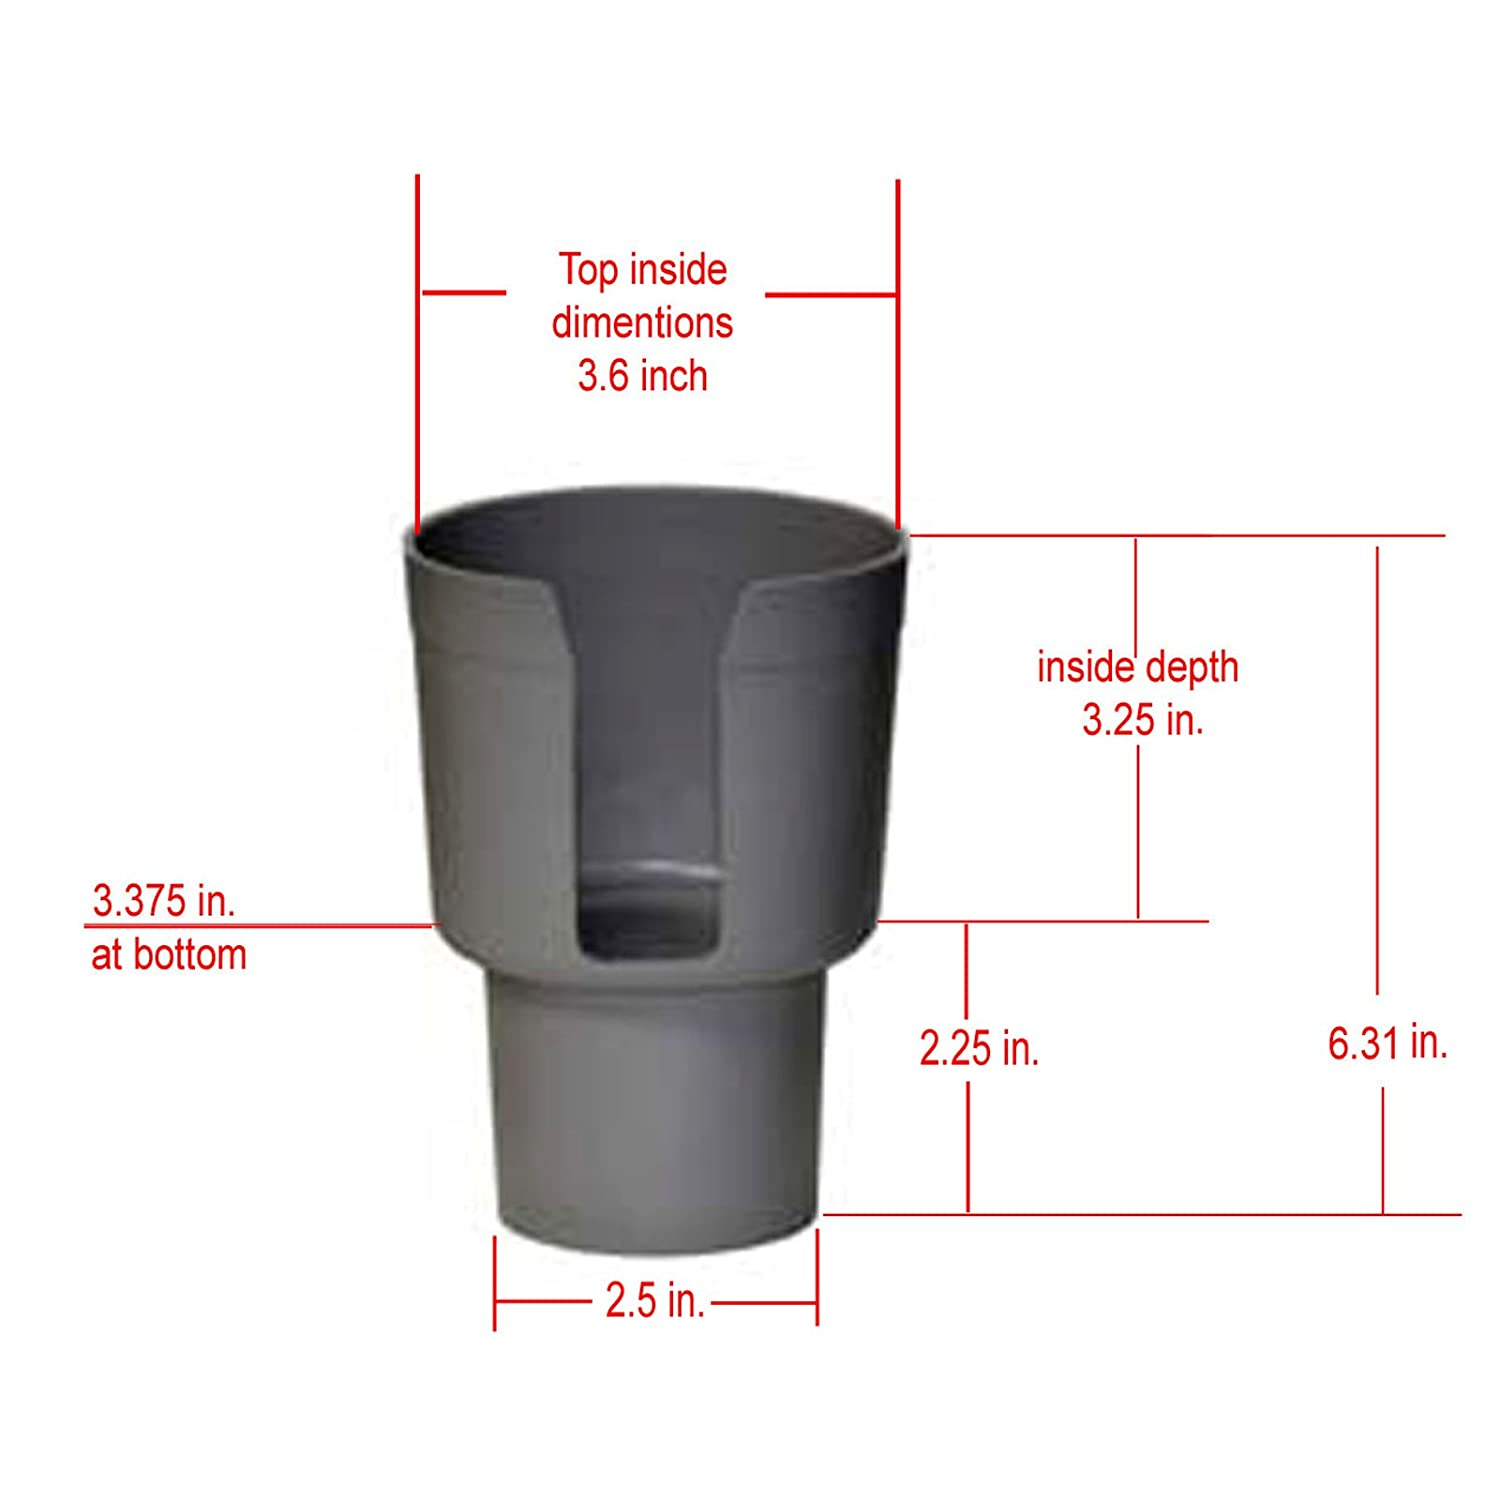 Convenience Store Cups Water Soda Bottles with up to 3.6 Diameter Gadjit Cup Keeper Gray Car Cup Holder Adapter Expands Cup Holders to Hold Mugs